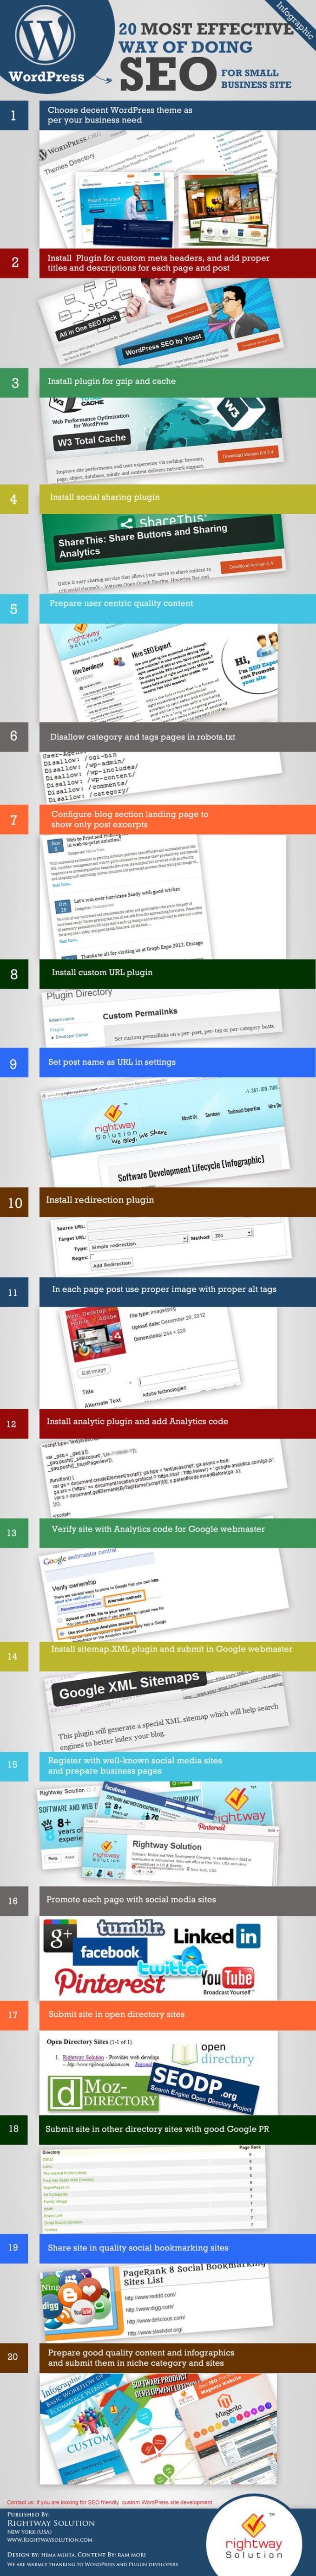 20 Most Effective ways of Doing SEO For Small Business Sites